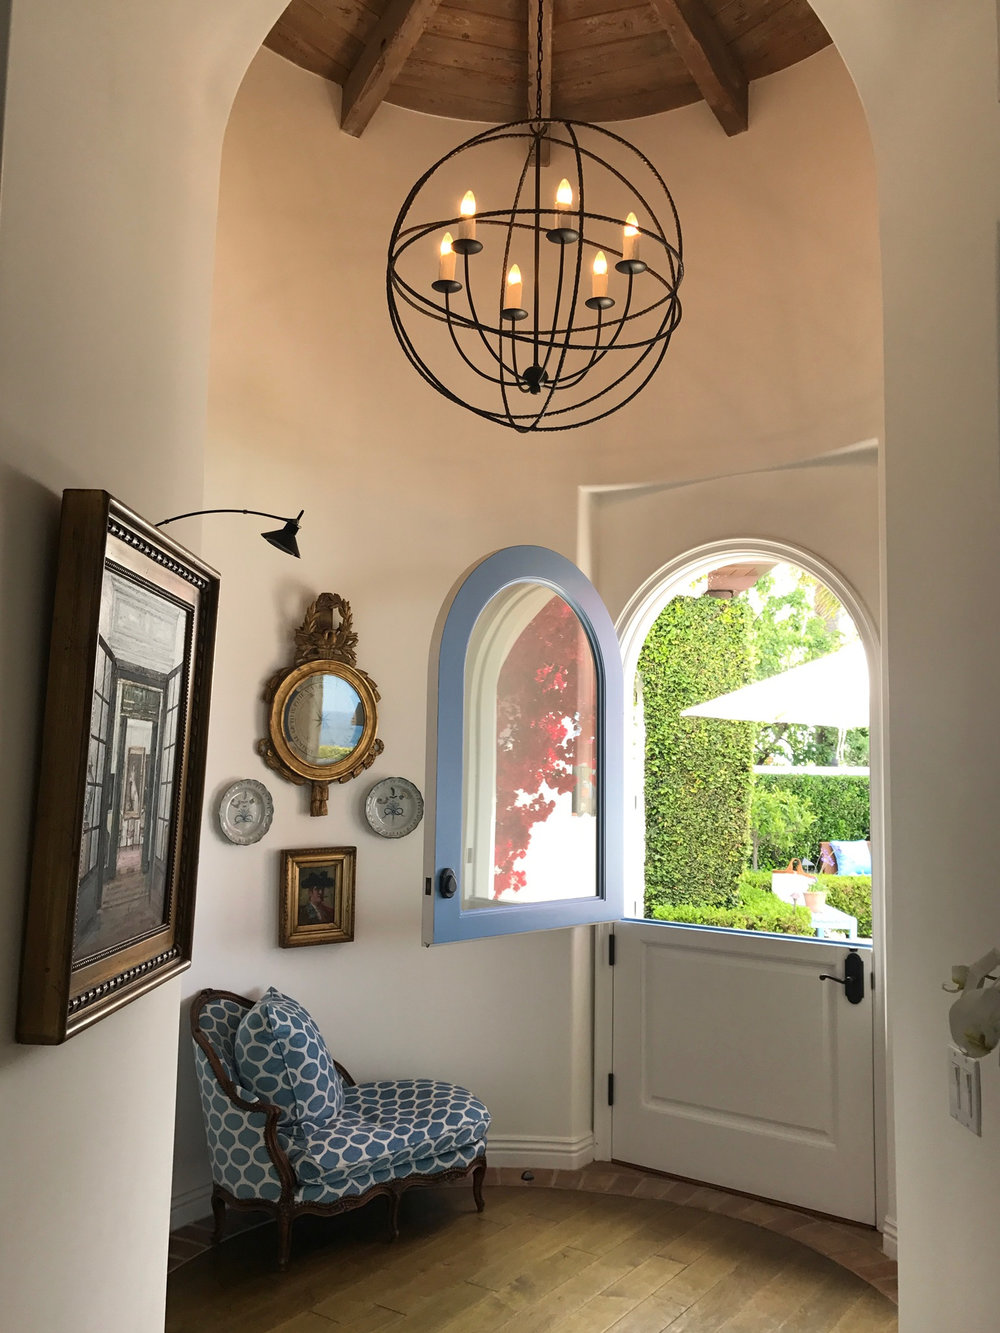 Laguna Beach home with Dutch door in French Blue, wood floors and wood ceilings.